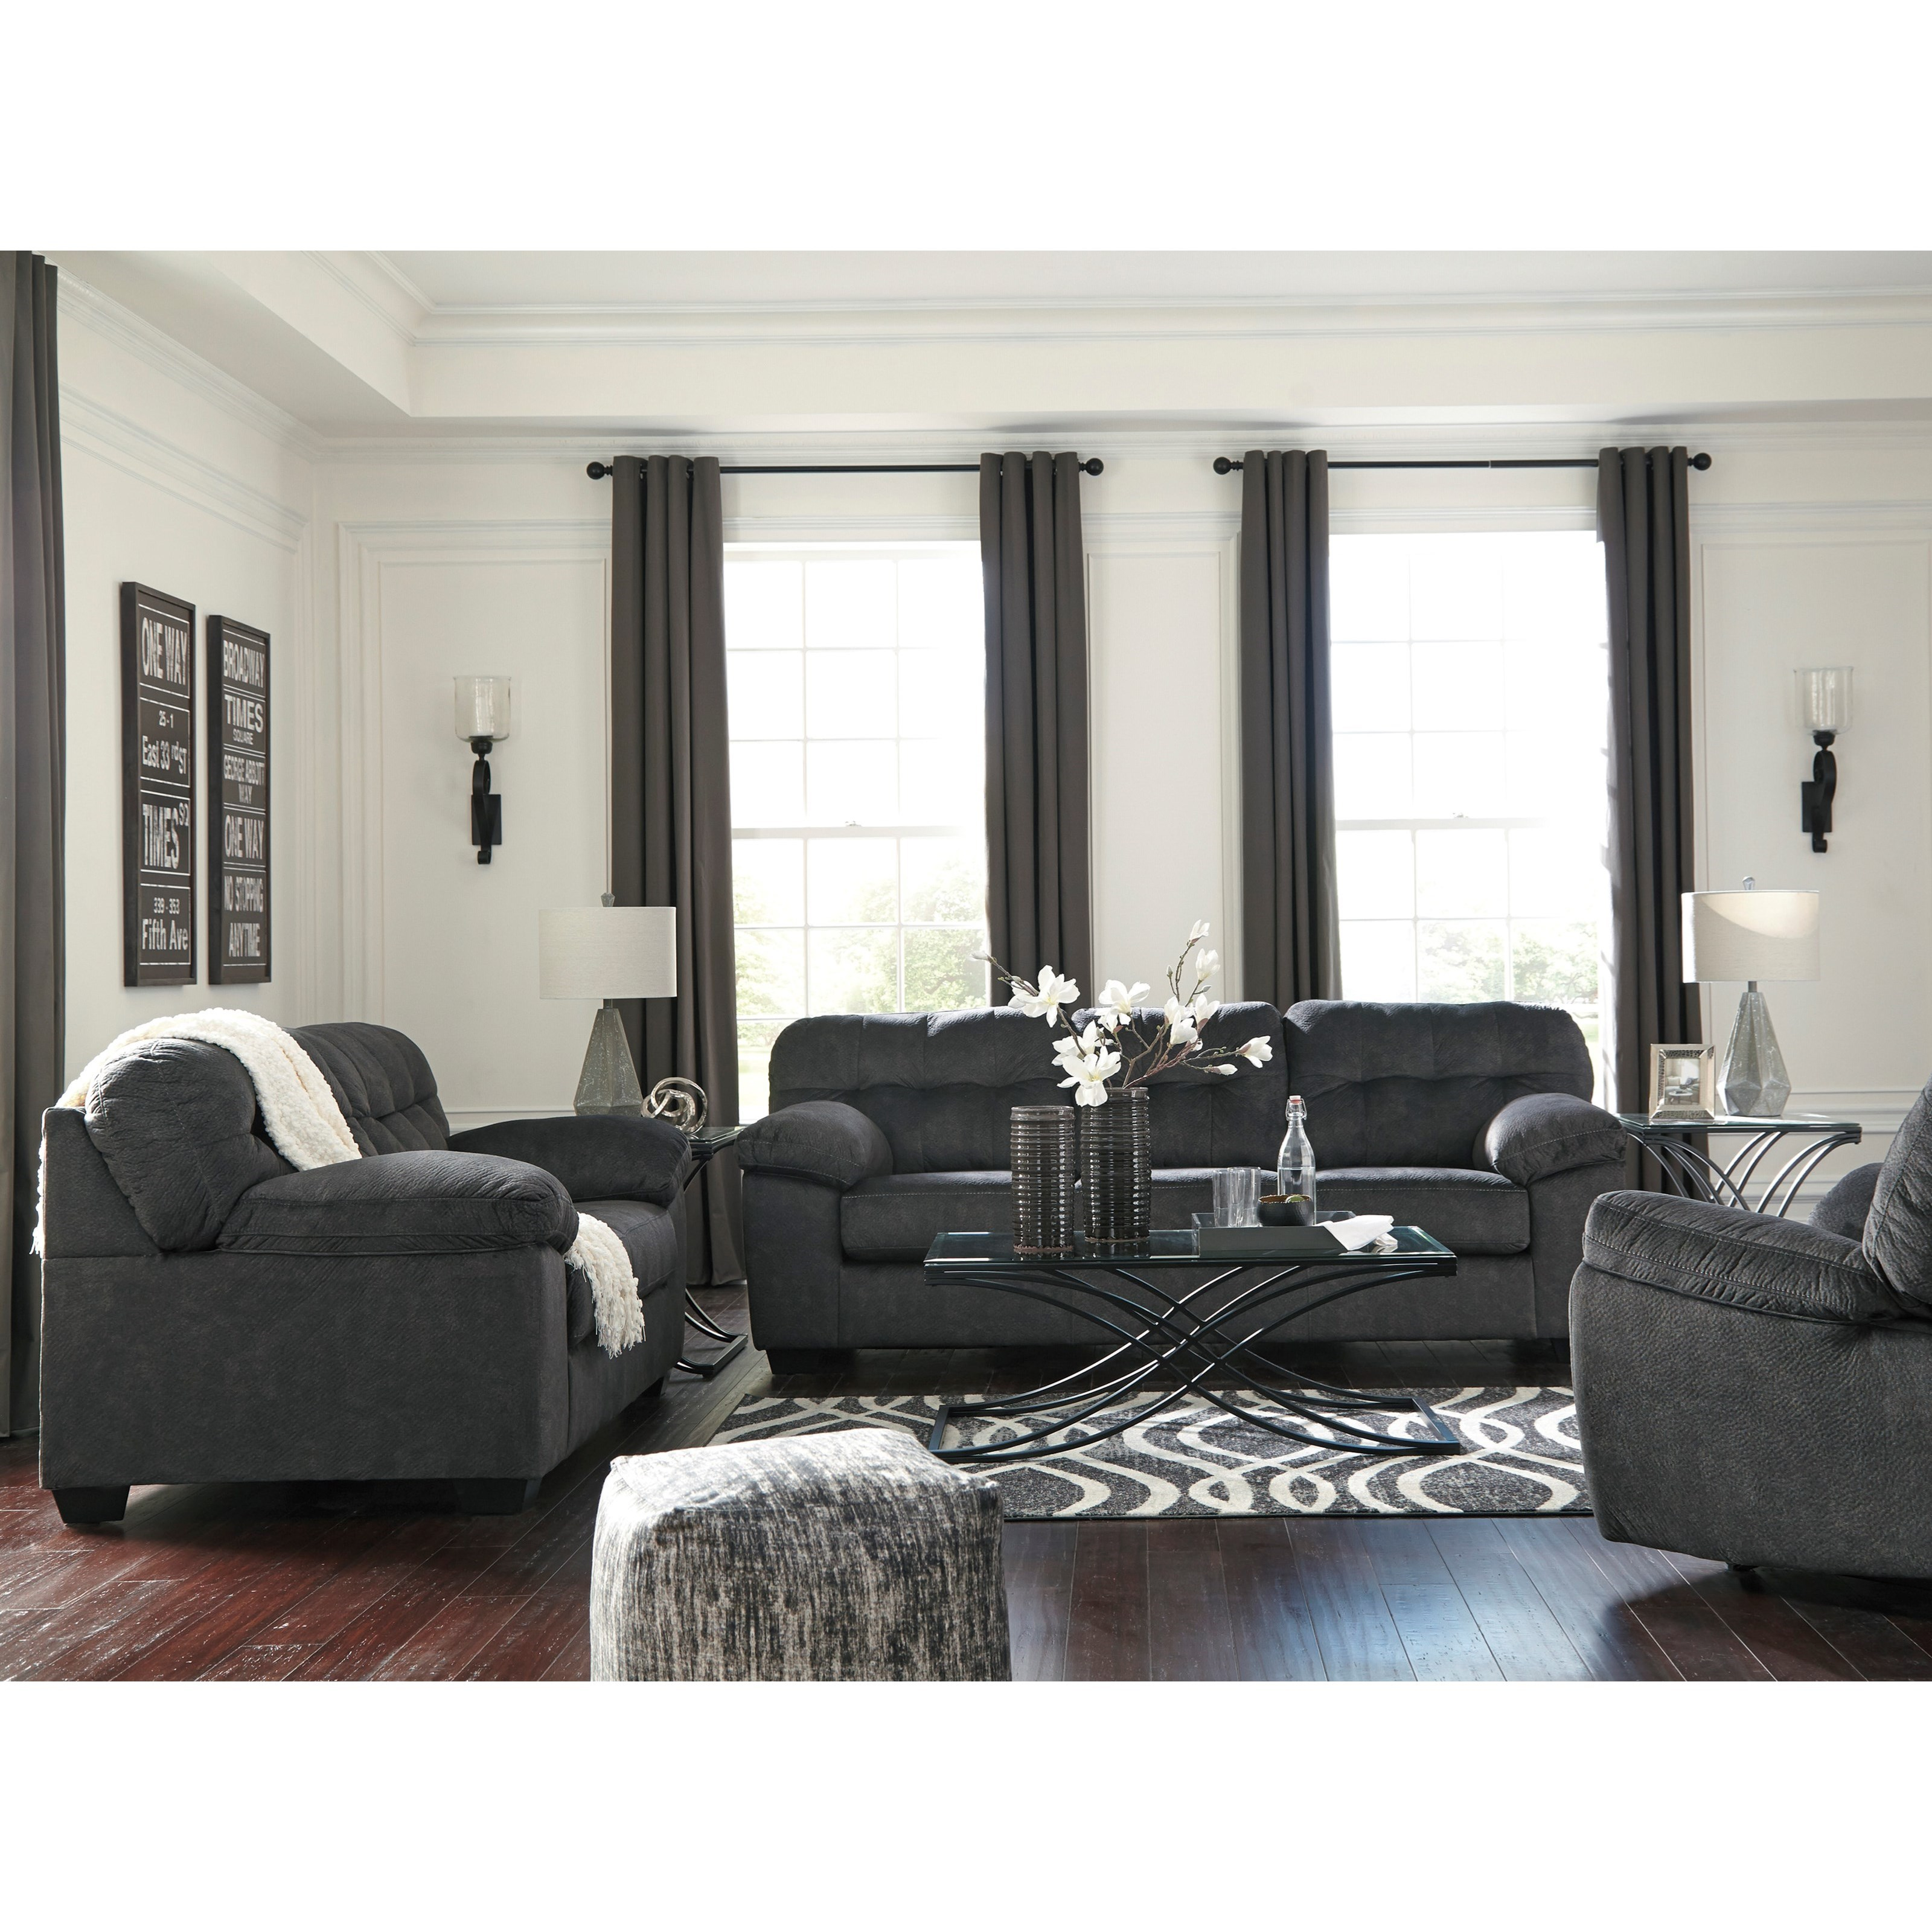 Accrington Stationary Living Room Group by Signature Design by Ashley at Suburban Furniture